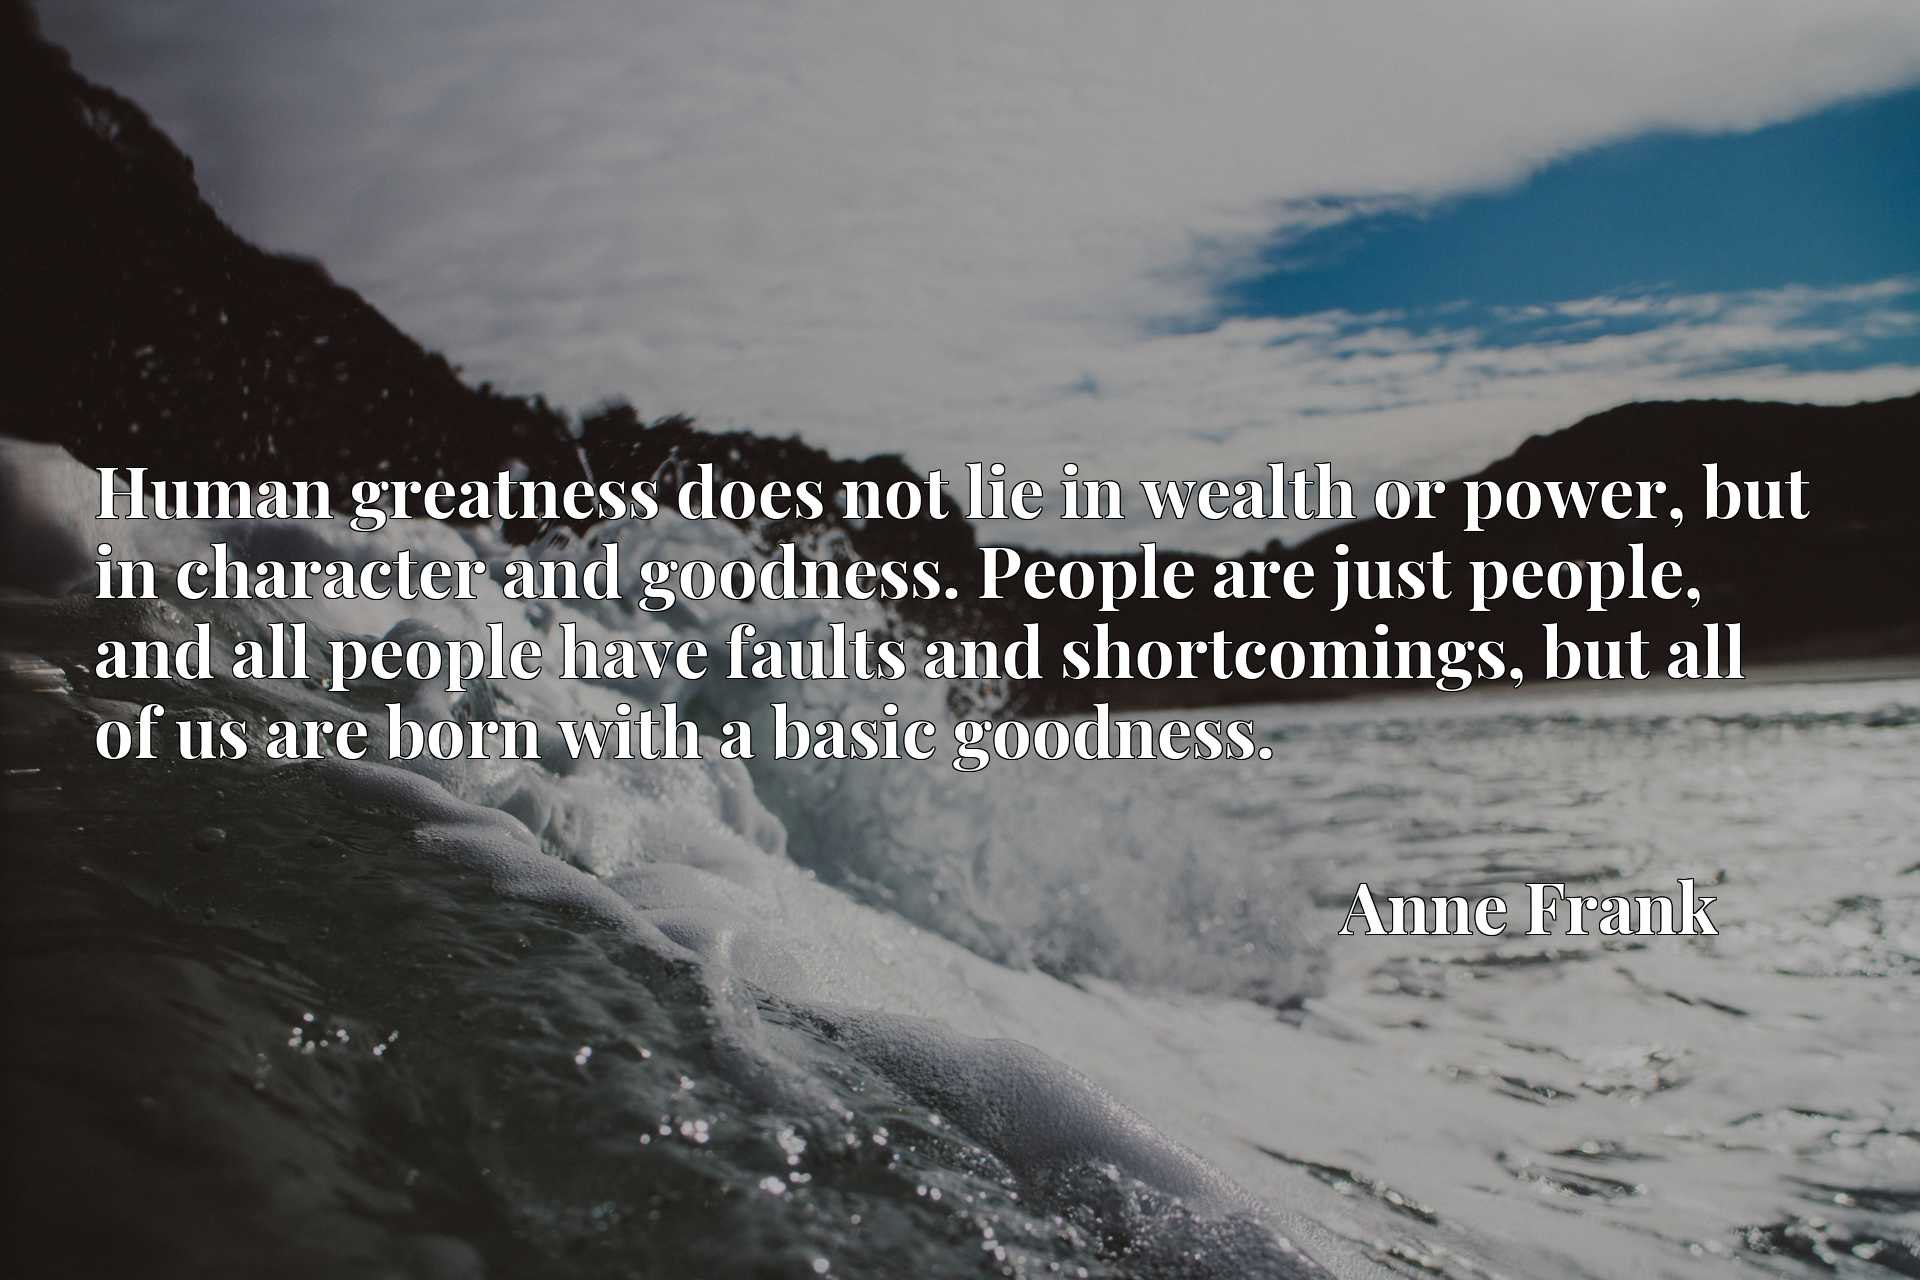 Human greatness does not lie in wealth or power, but in character and goodness. People are just people, and all people have faults and shortcomings, but all of us are born with a basic goodness.